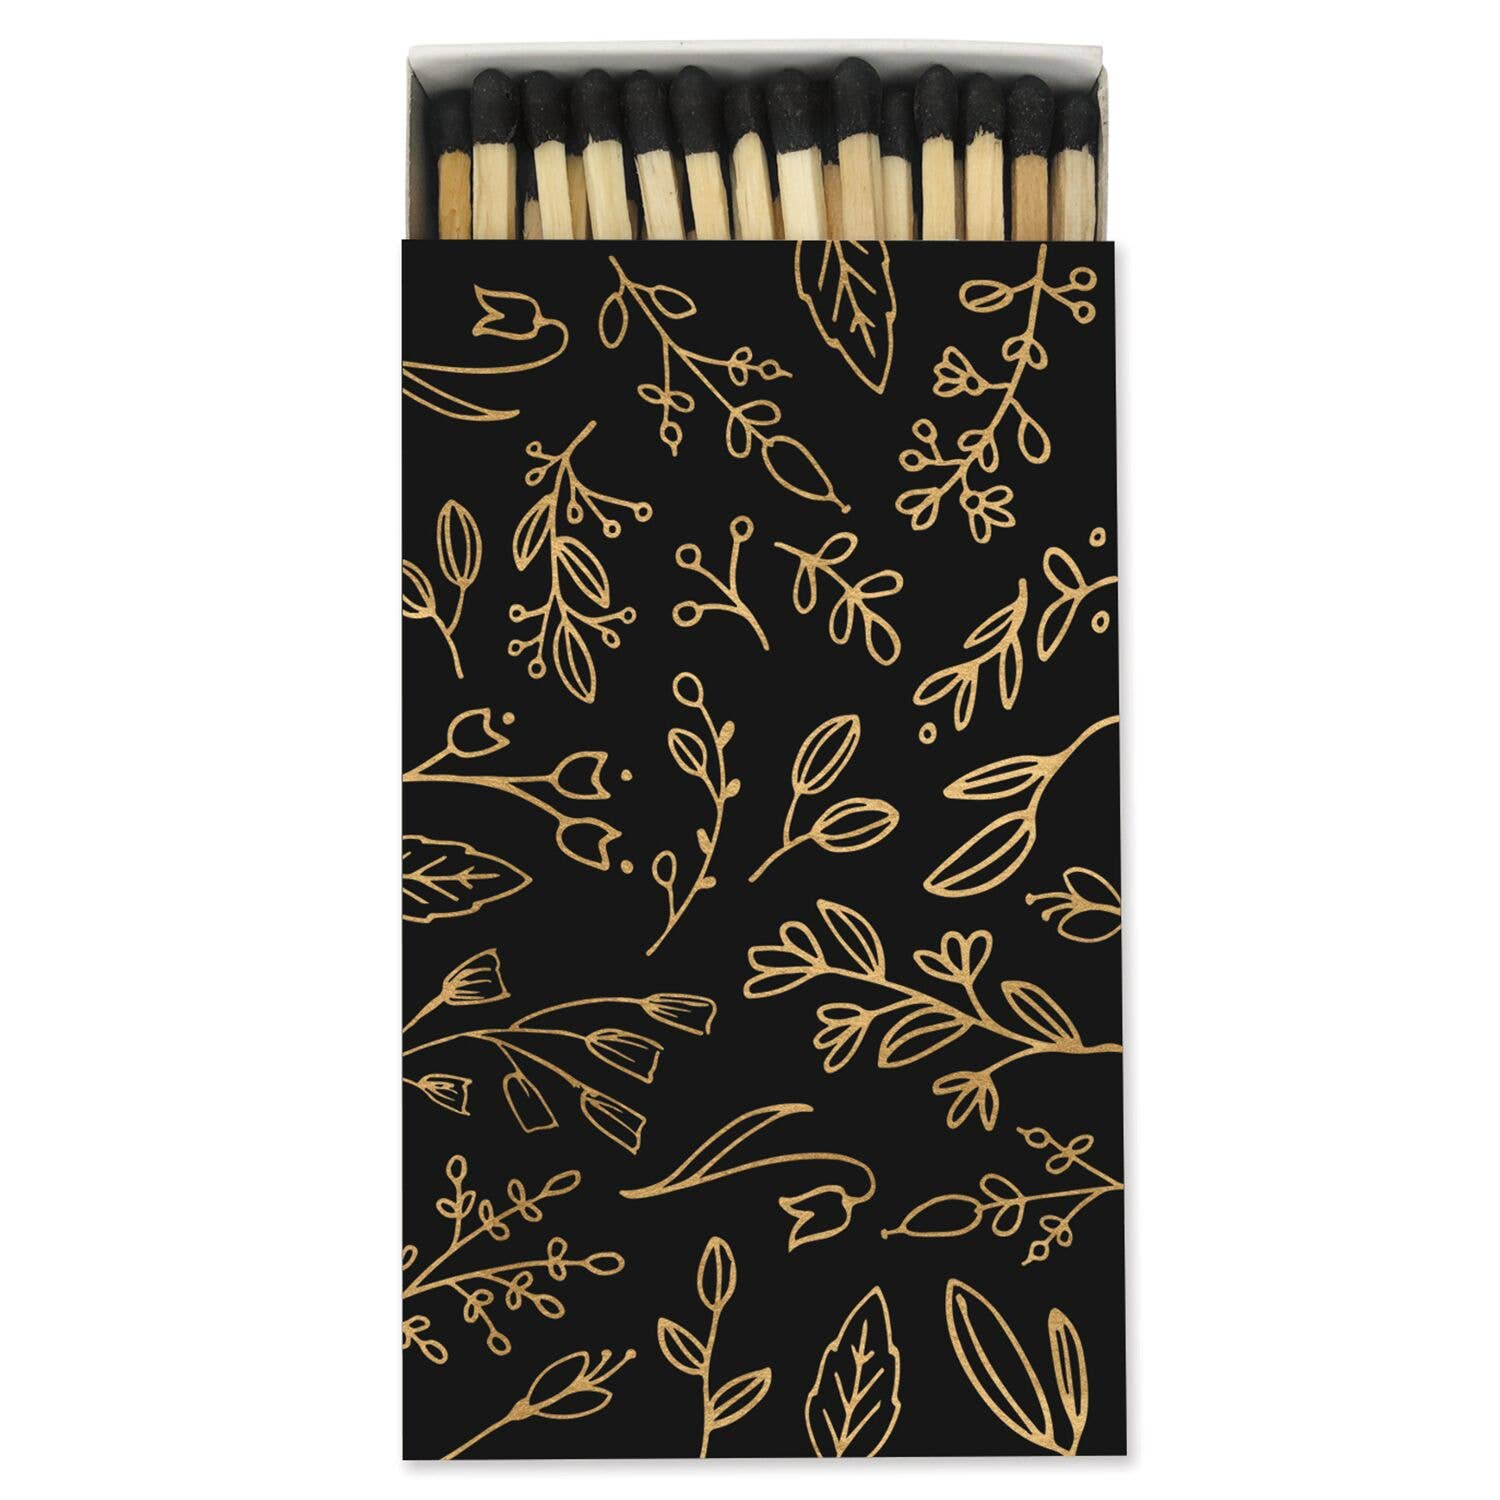 Large Match Box: Black & Gold Foil Floral